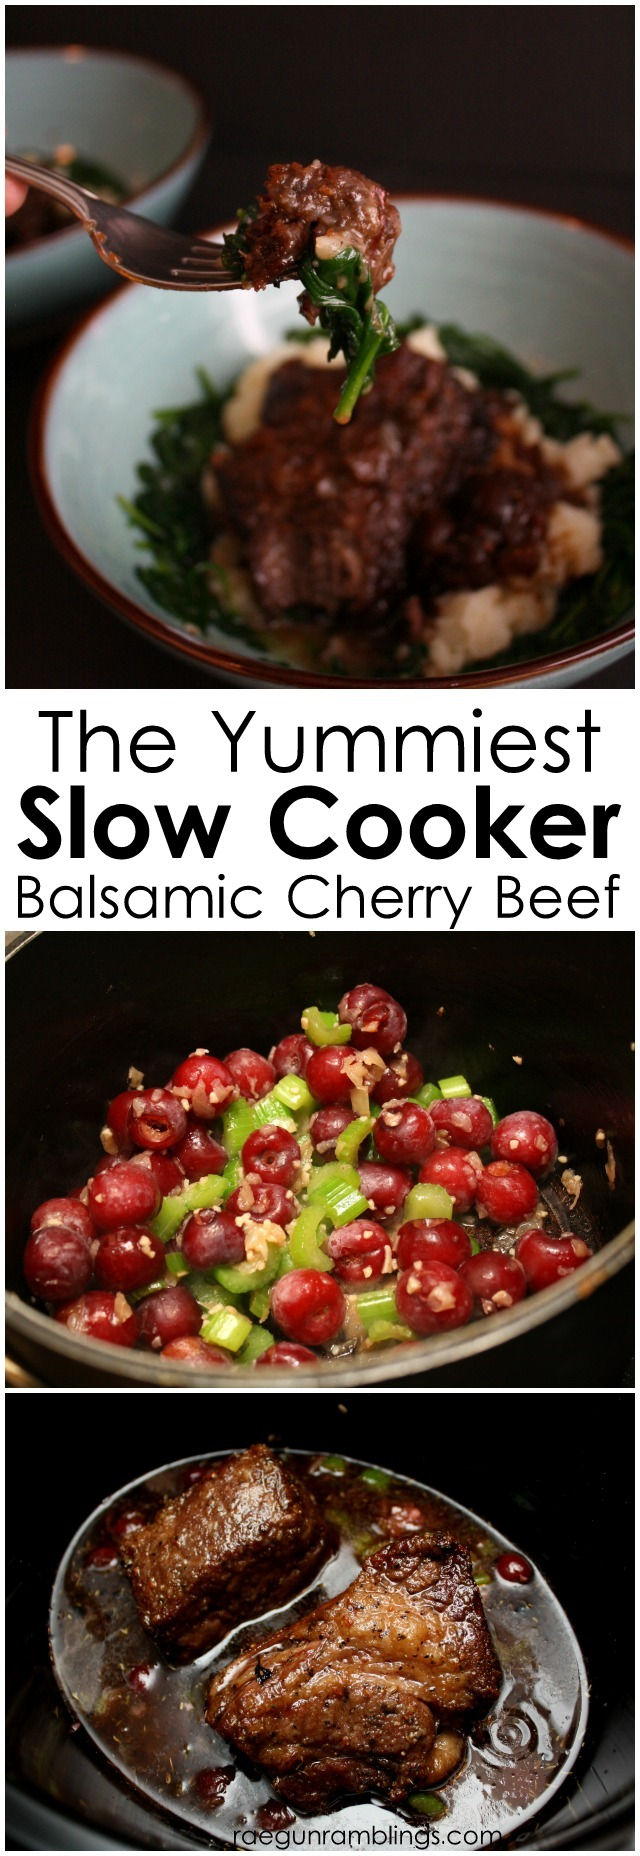 SOOO good! balsamic cherry beef roast crock pot and slow cooker - Rae Gun Ramblings